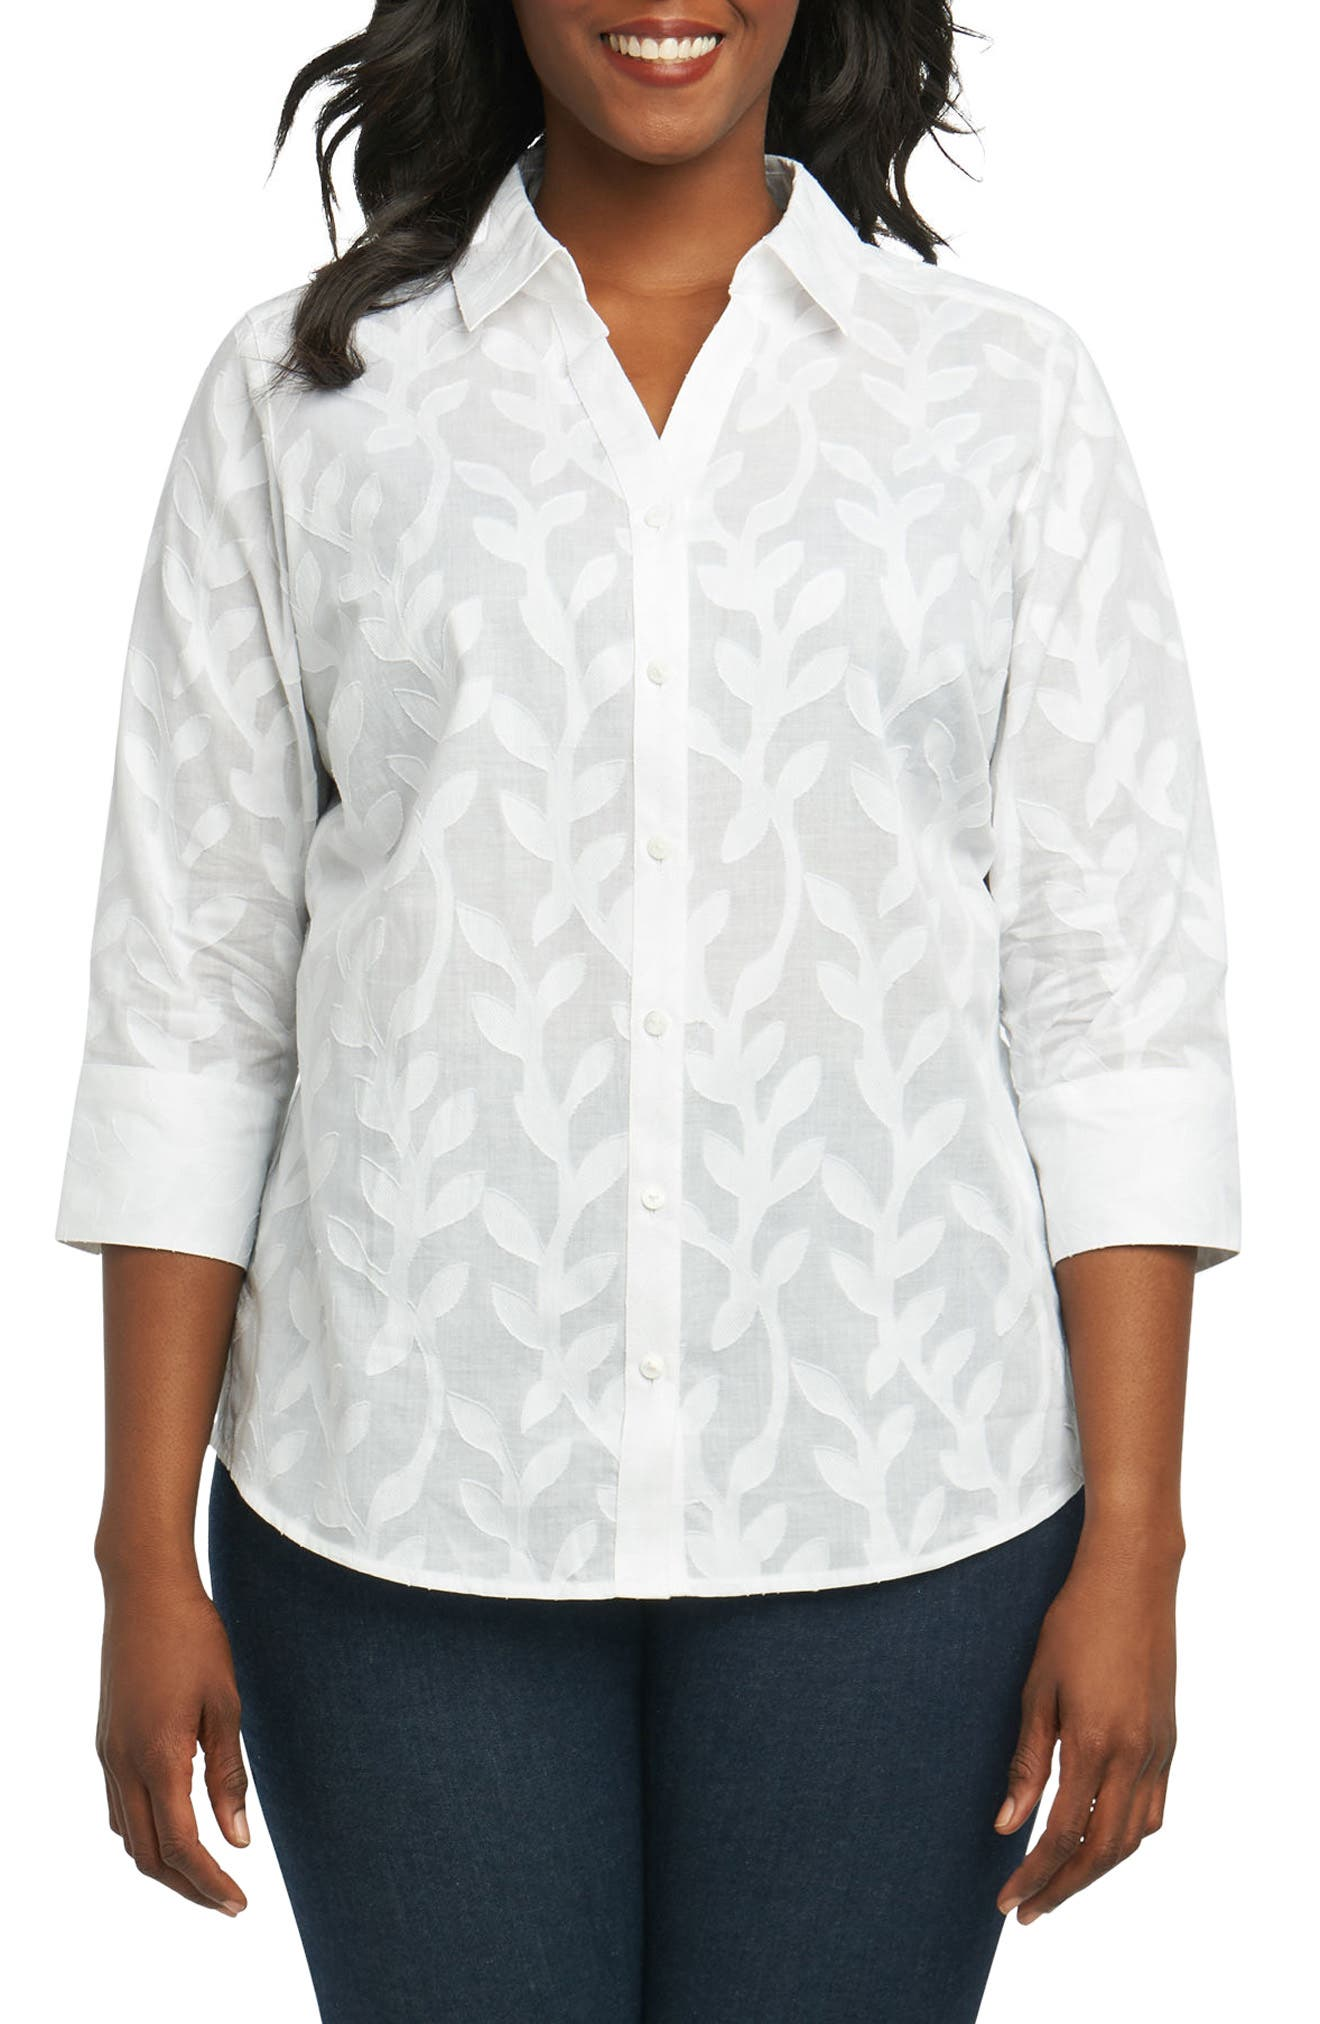 Mary Palm Jacquard Shirt,                             Main thumbnail 1, color,                             100